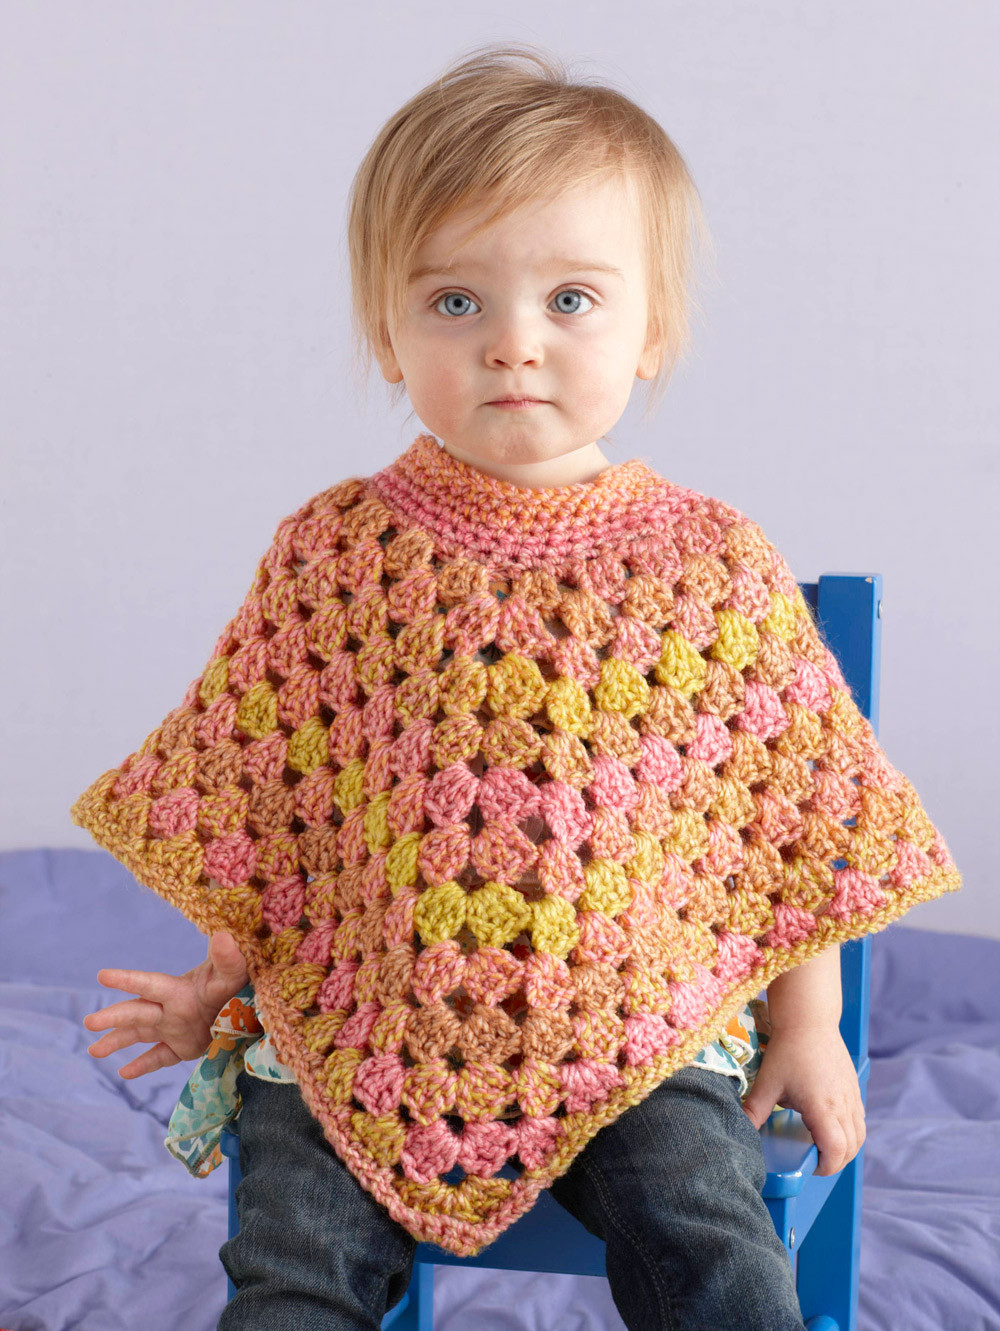 Crochet Child Poncho Inspirational How to Crochet A Child S Poncho Crochet and Knit Of Crochet Child Poncho Fresh Easy Poncho to Crochet with Puff Stitch Rows